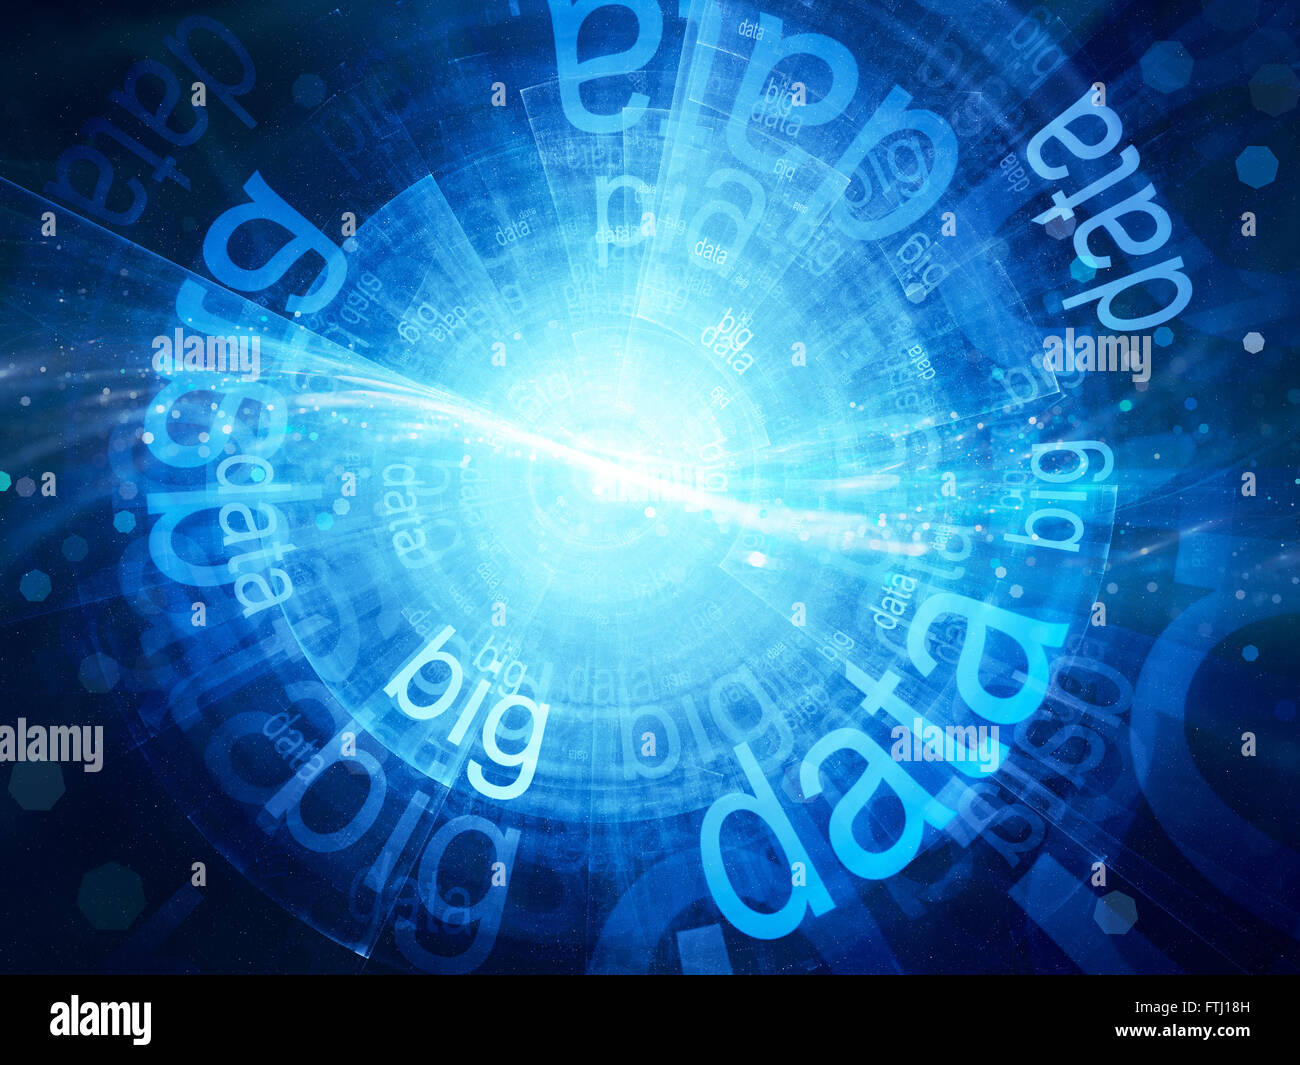 Blue glowing big data, computer generated abstract background - Stock Image